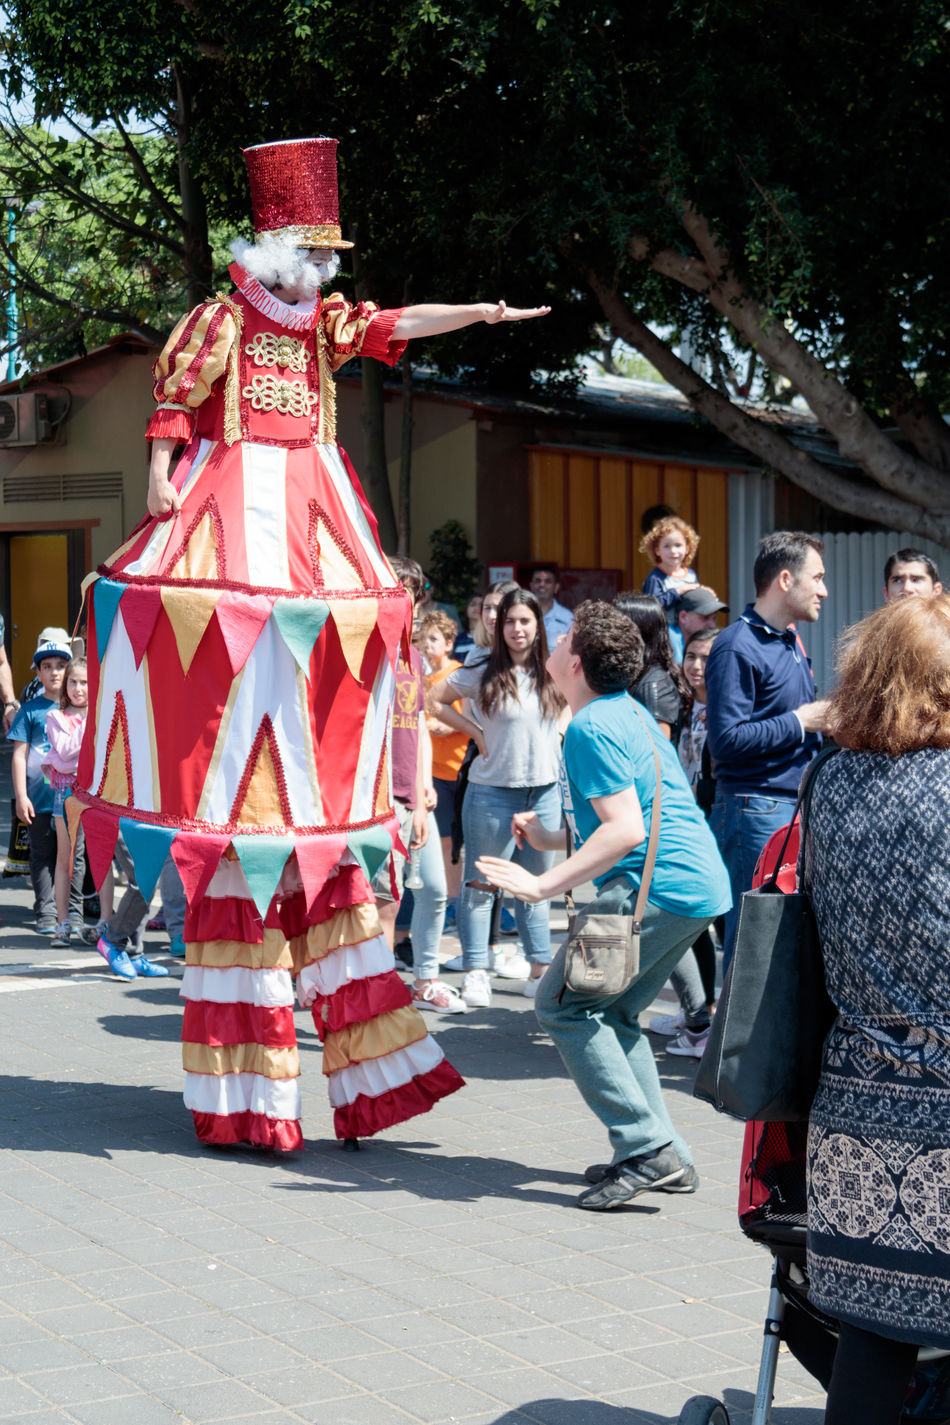 Tel Aviv, Israel, April 16, 2016 : Clown on stilts greets visitors to the attractions park in Tel Aviv, Israel Amusement  Attraction Beautiful Carnival Clown Costume Day Entertainment Event Face Festival Fun Funny Happiness Happy Holiday Joy Light Outdoors Park People Performer  Romantic Smile Stilt